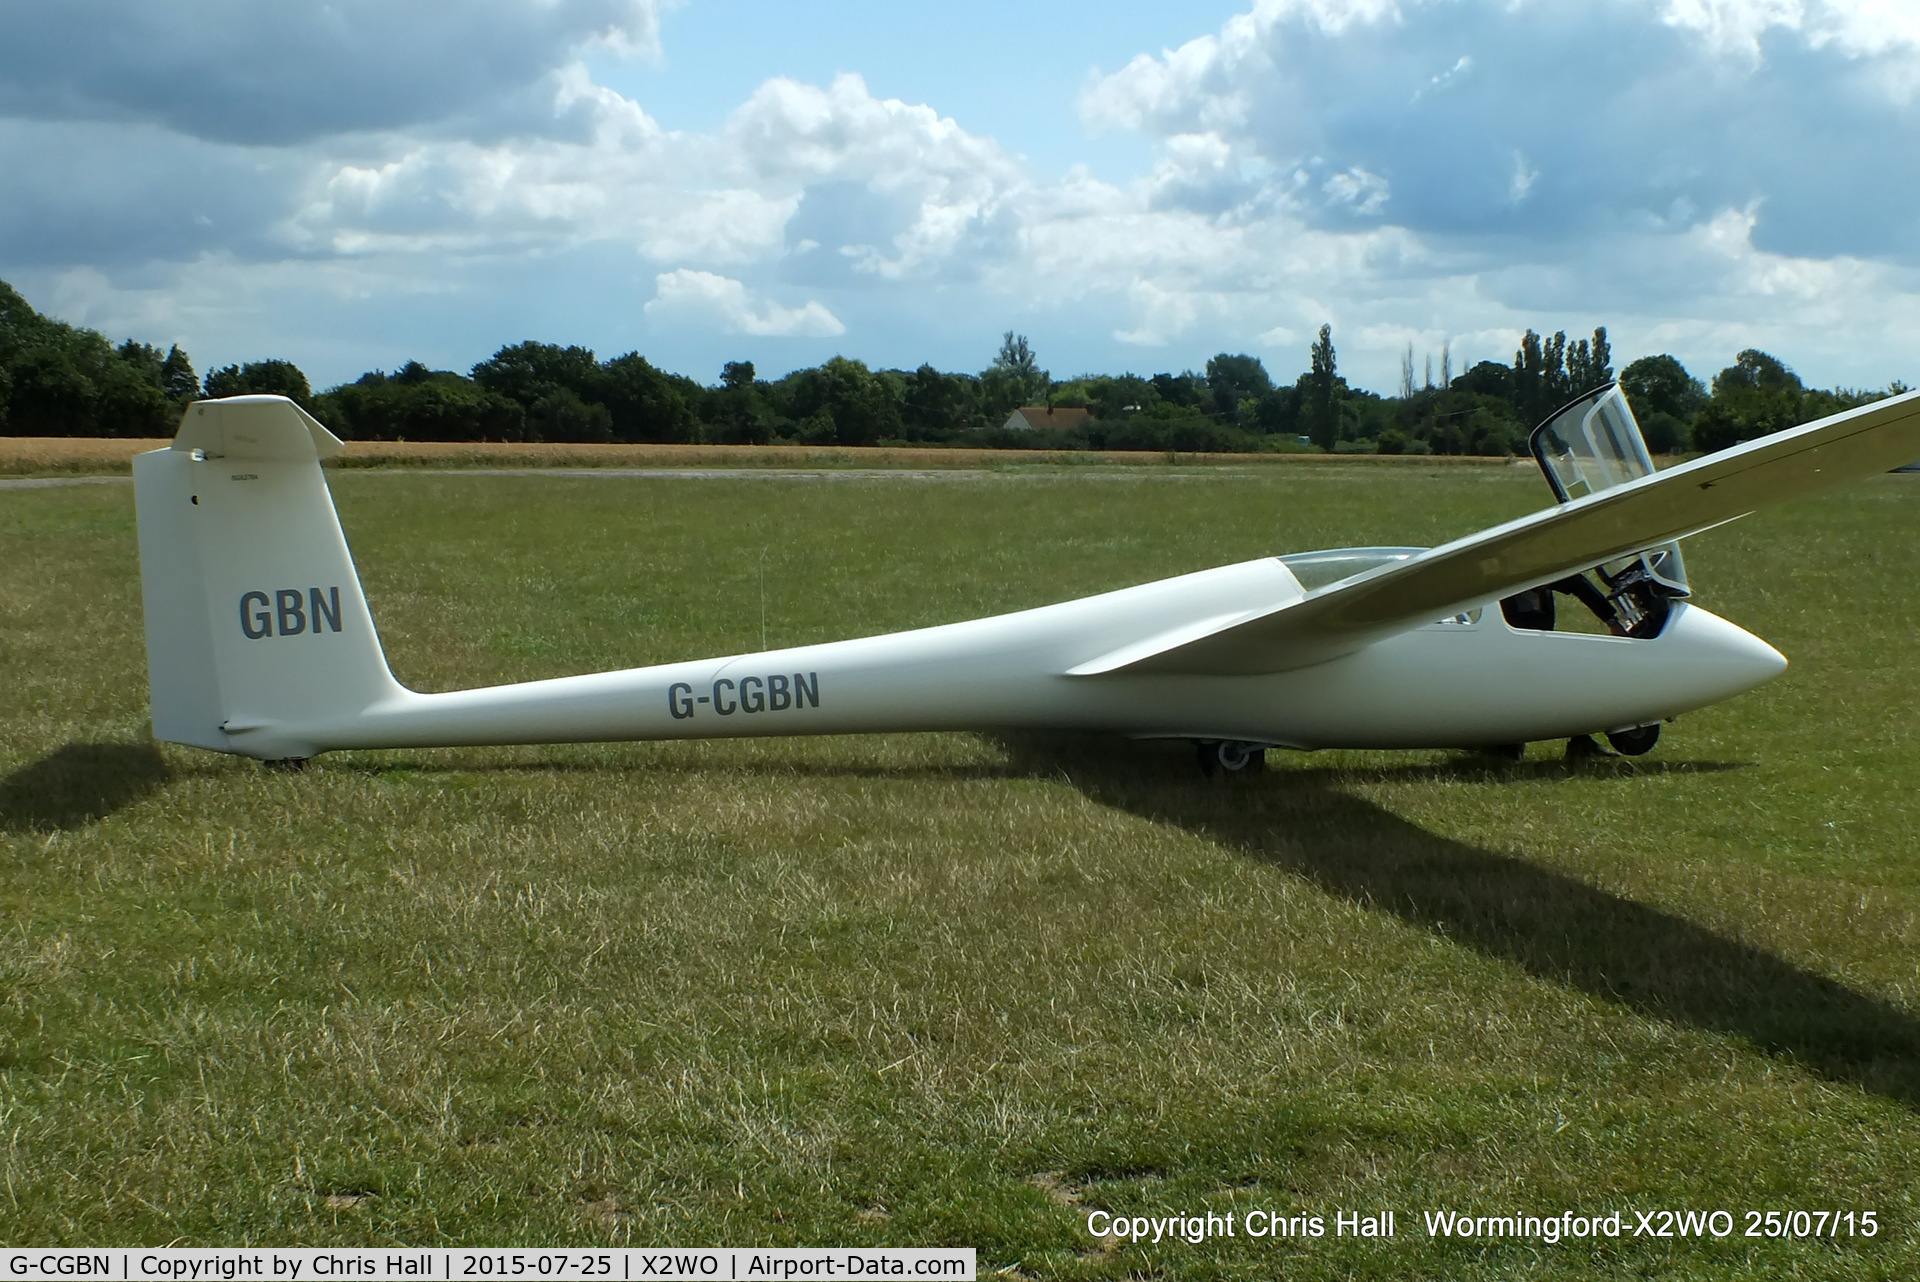 G-CGBN, 1985 Schleicher ASK-21 C/N 21141, at Wormingford airfield